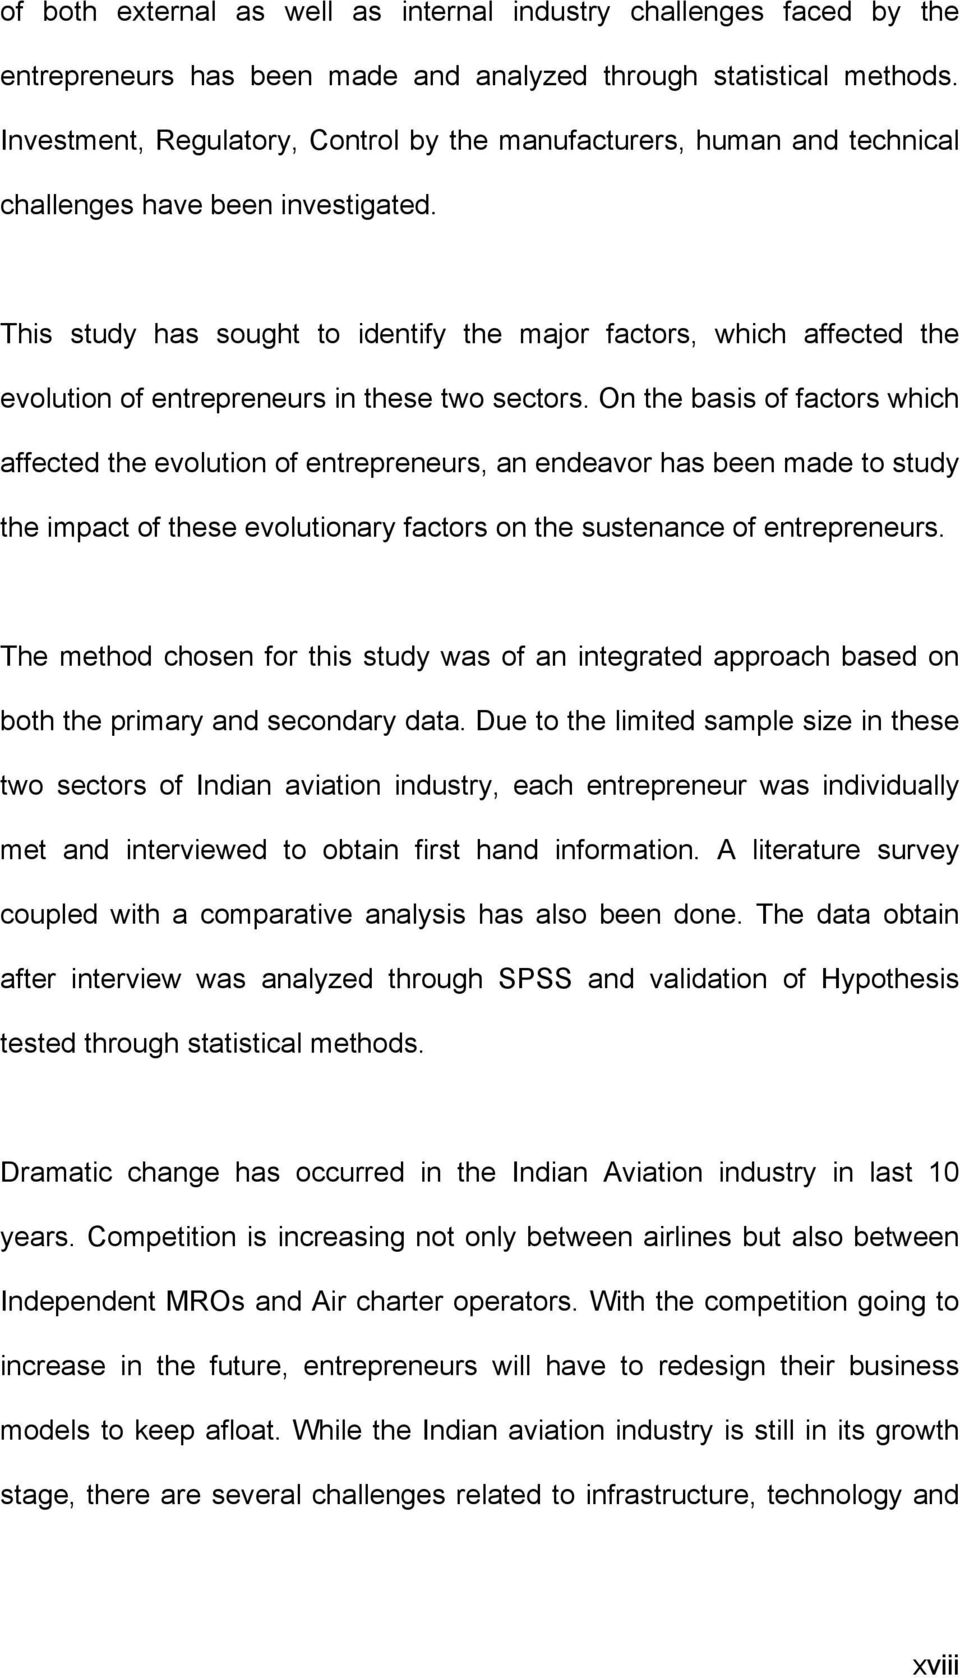 This study has sought to identify the major factors, which affected the evolution of entrepreneurs in these two sectors.